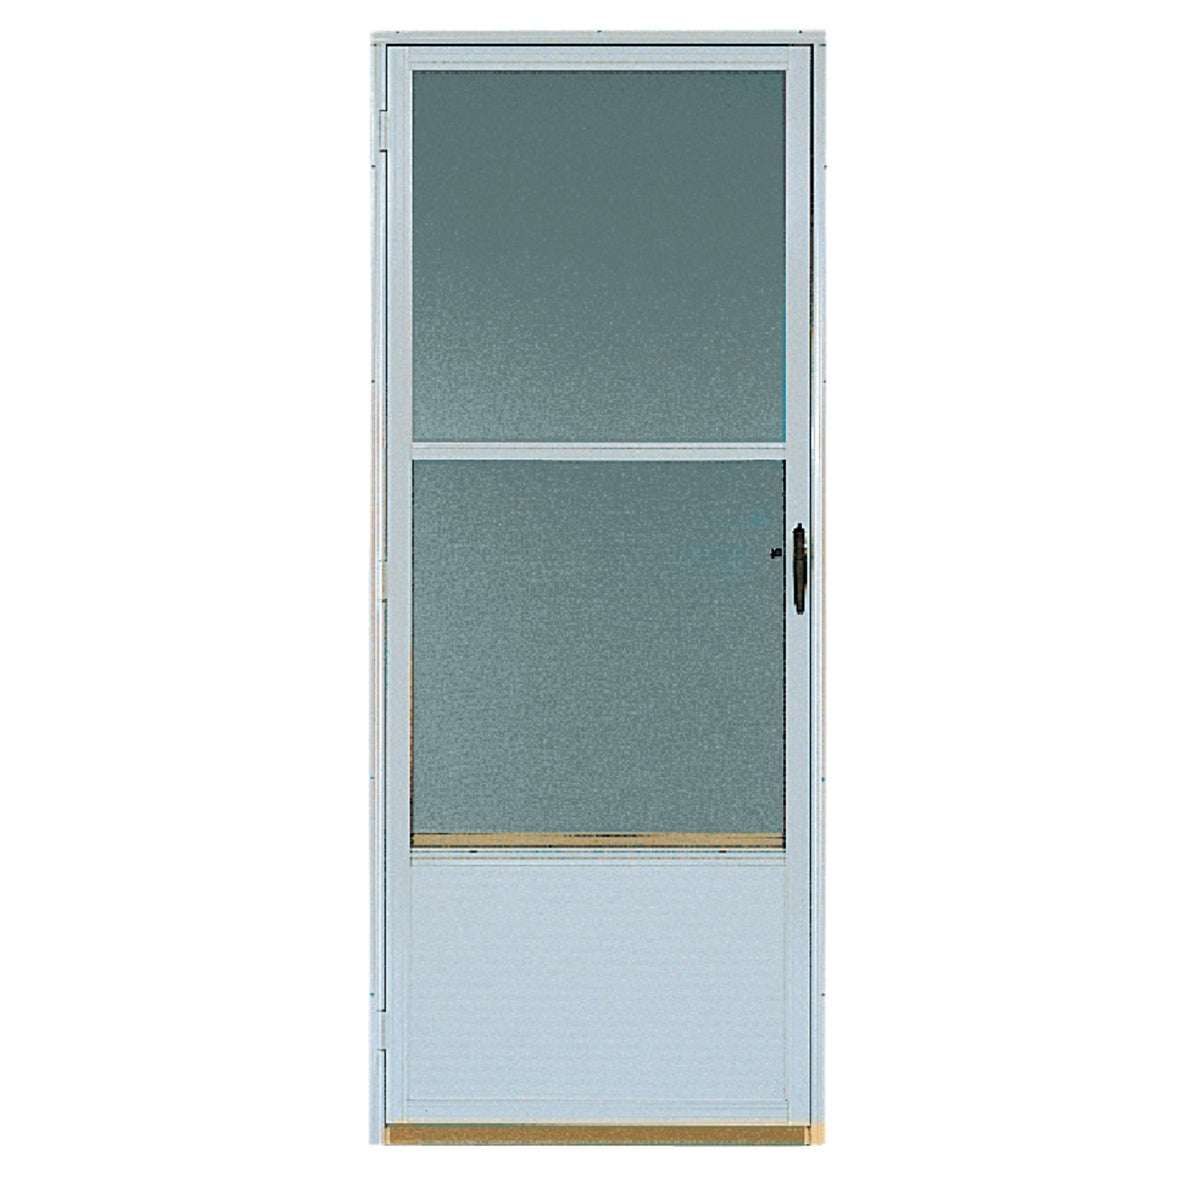 563 2868 RH WHT DOOR - F14560 by Croft Llc